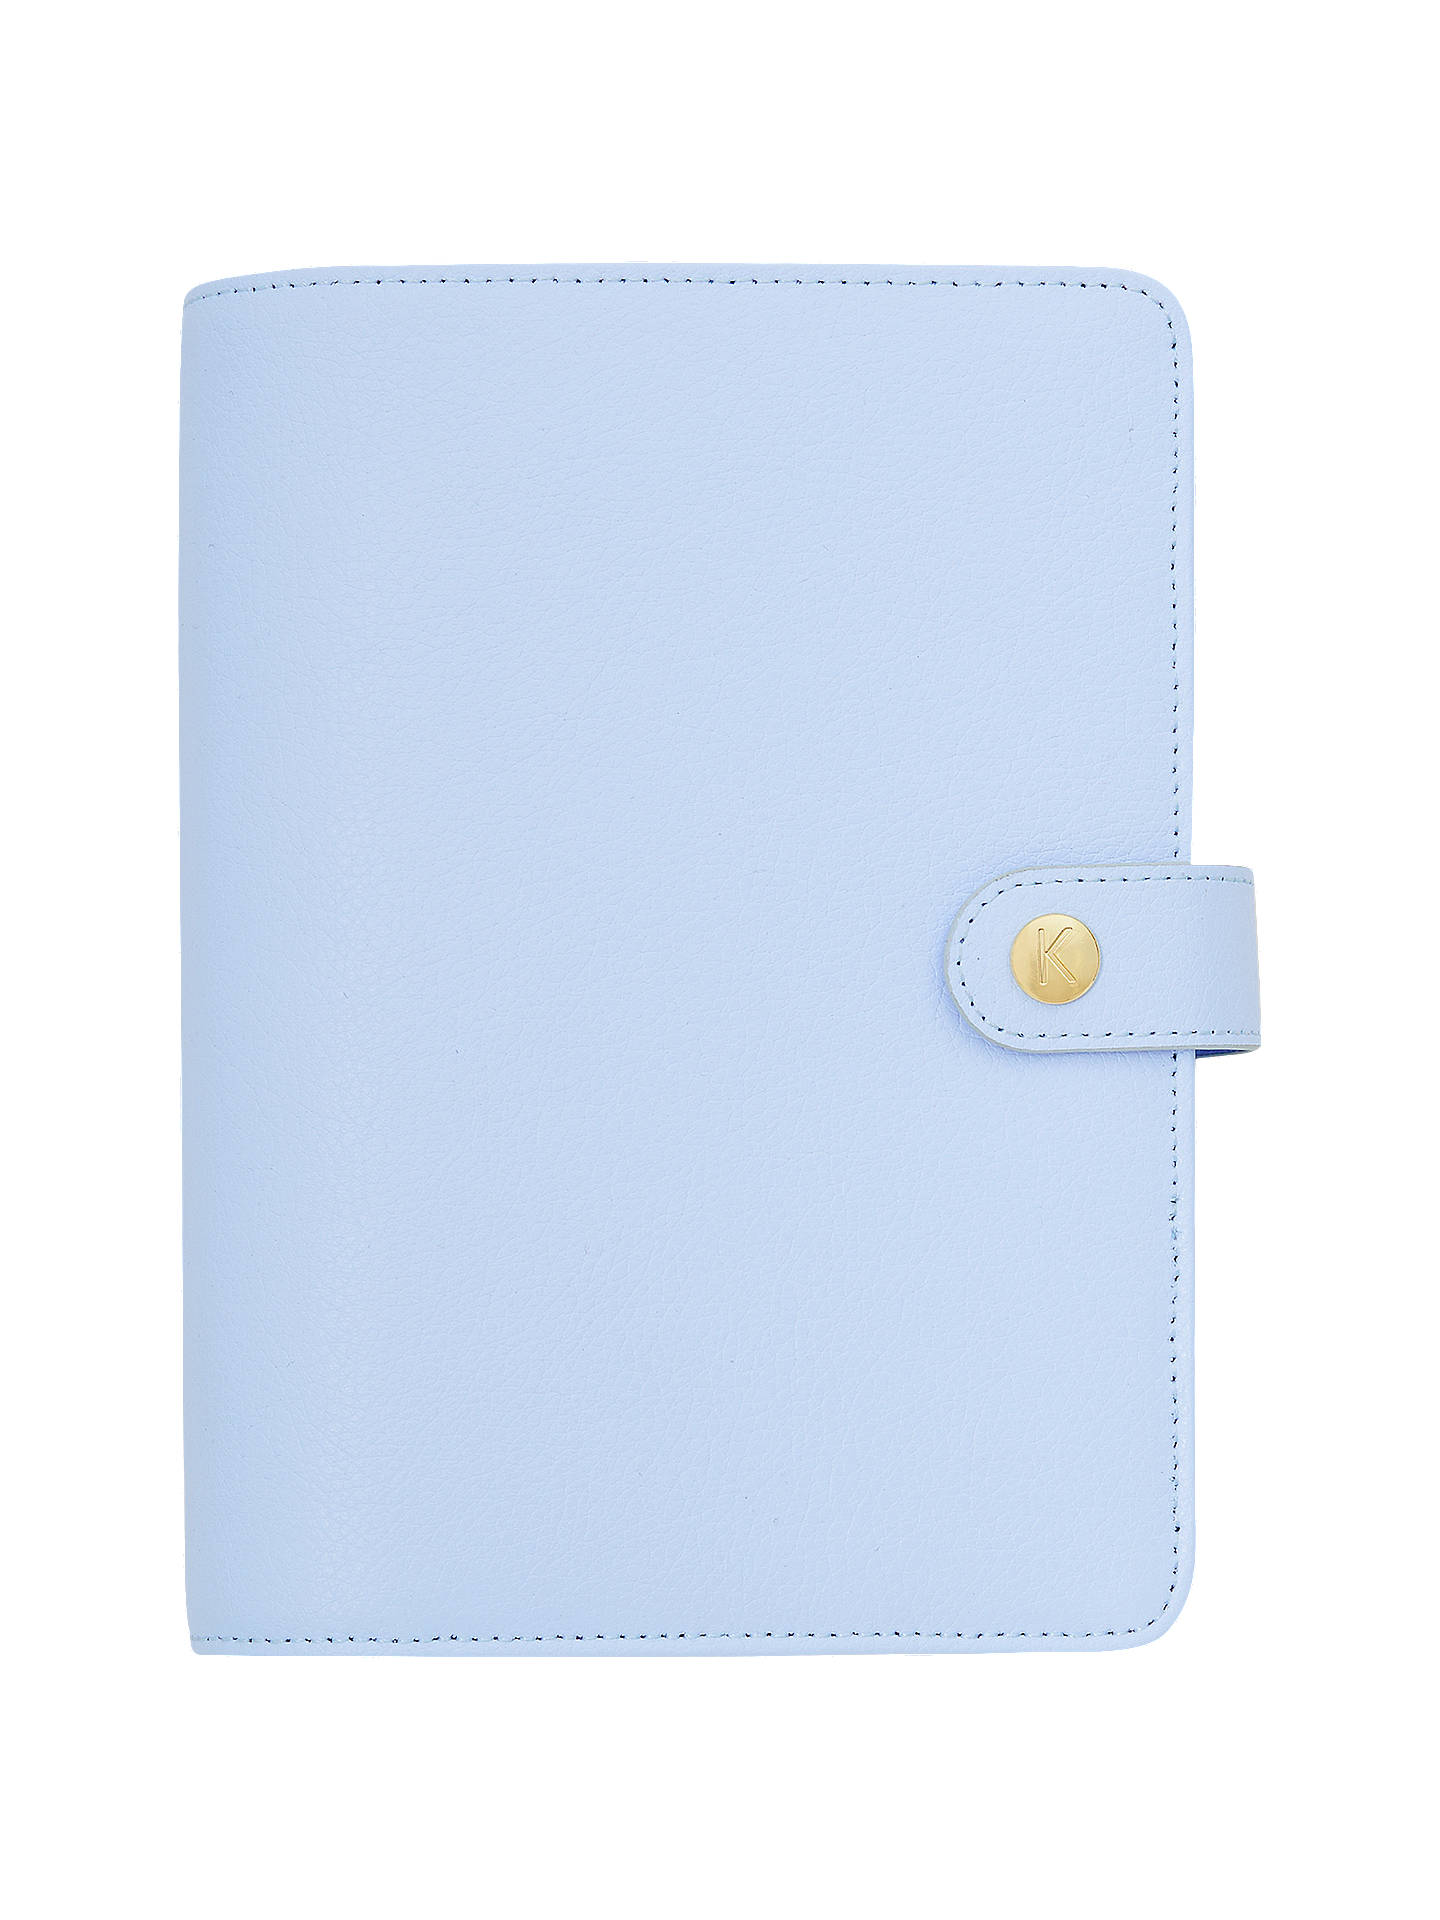 kikki k medium leather personal planner at john lewis partners